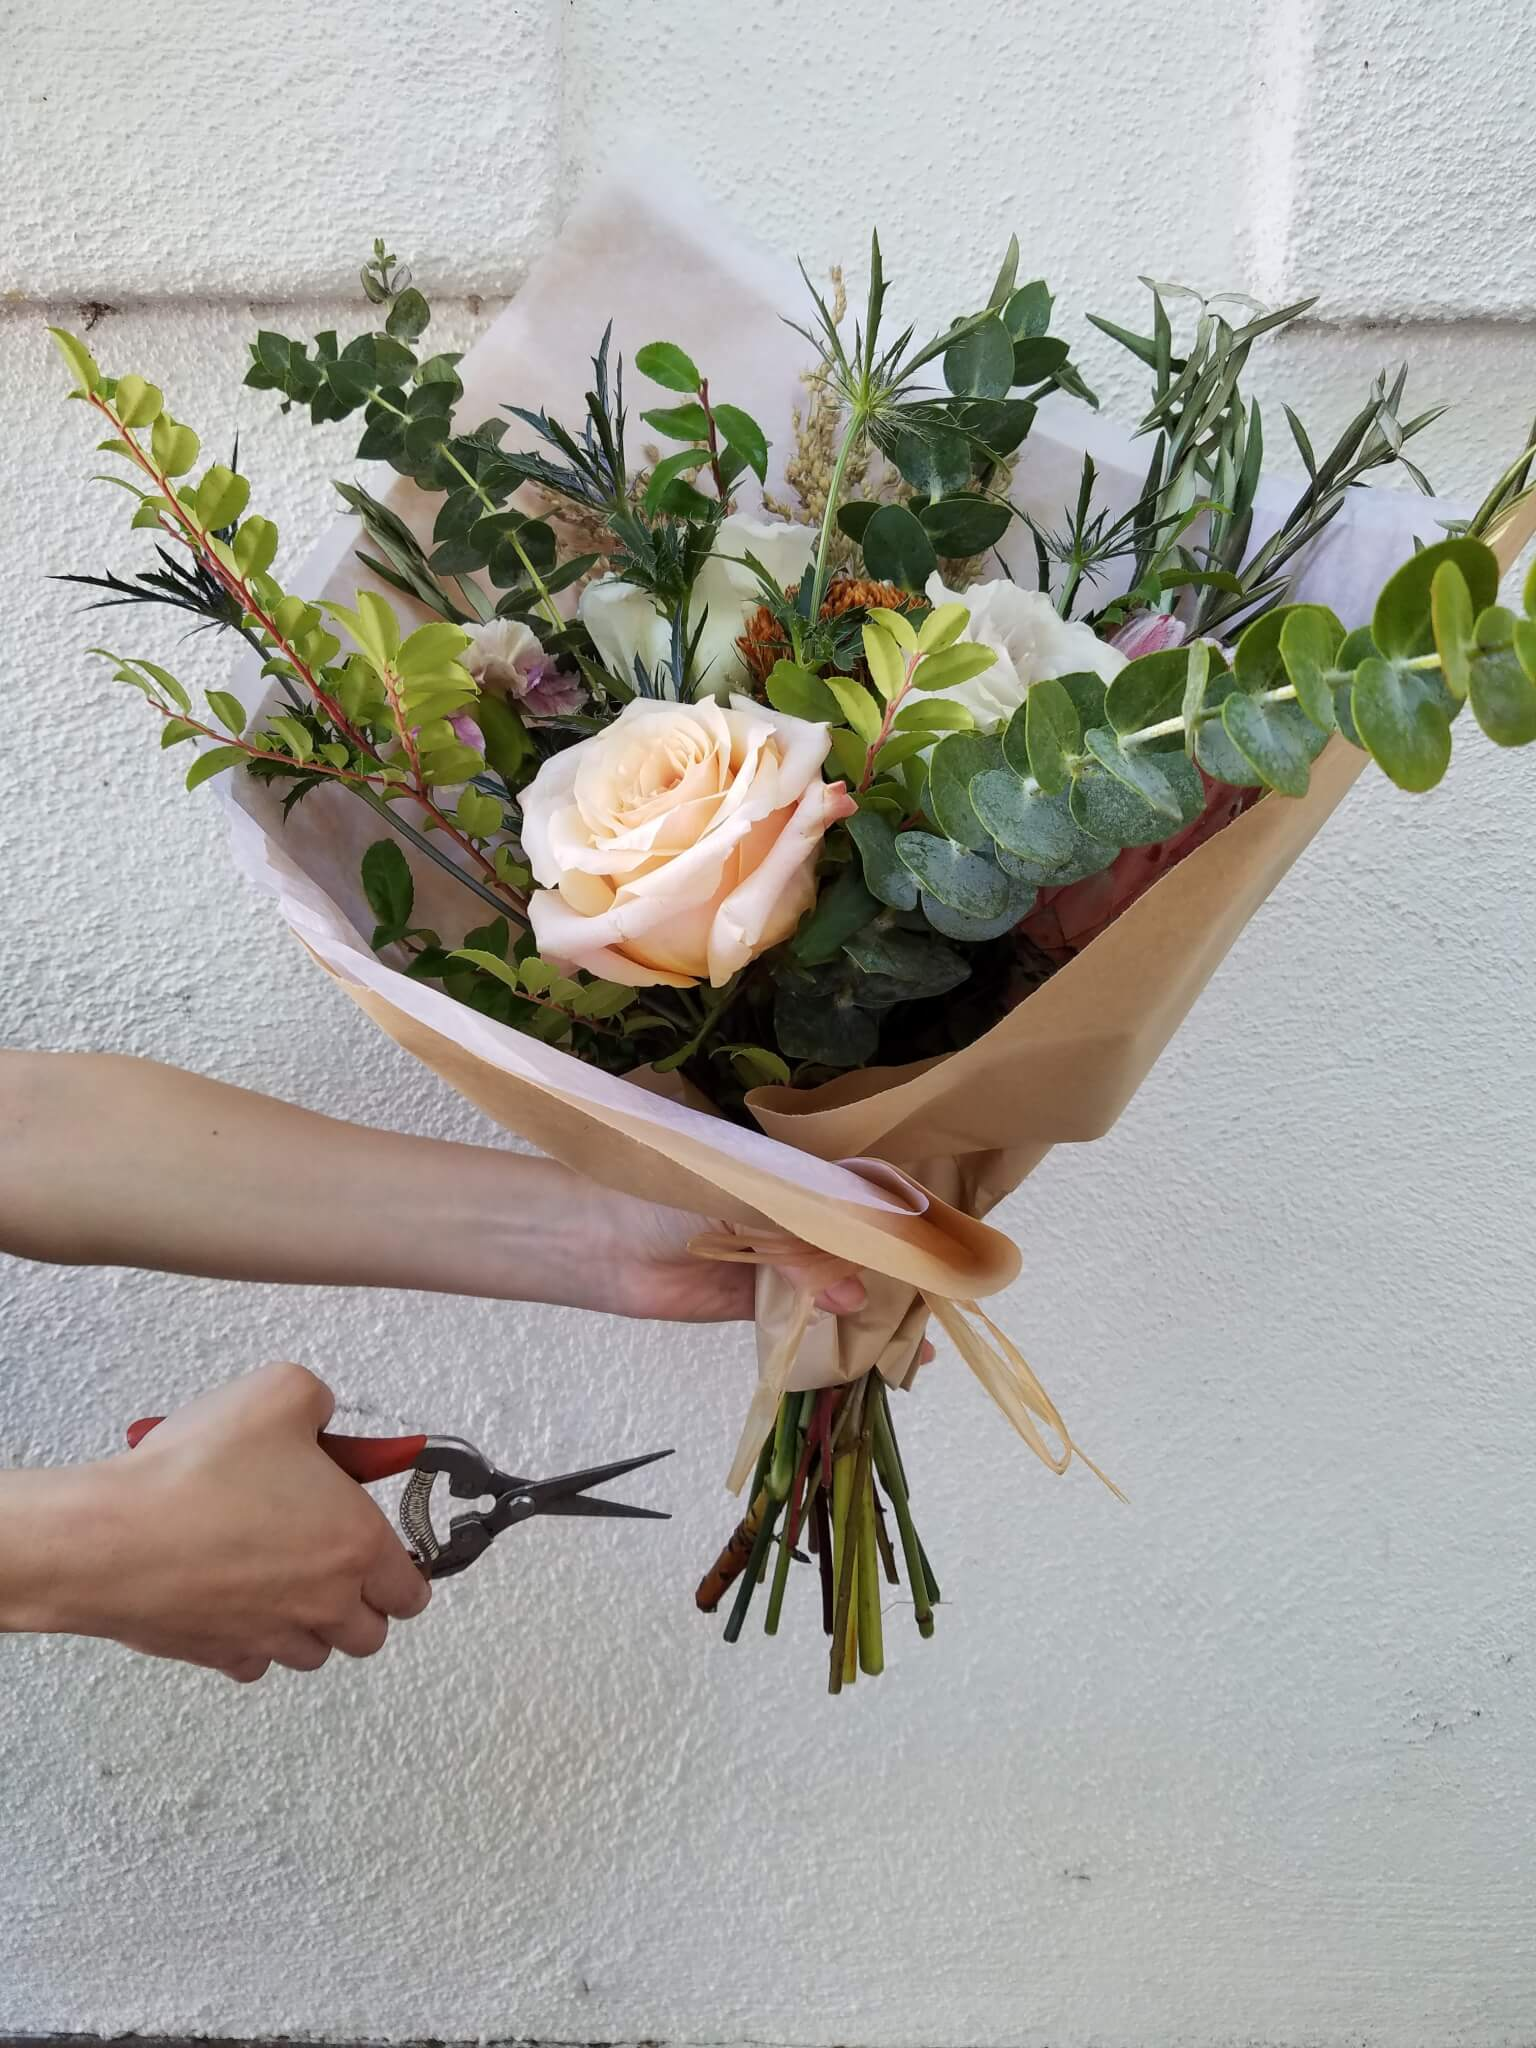 You just got a Twig and Vine floral arrangement. Best day ever! First thing you will need to do to properly care for these beauties is take off all of the ...